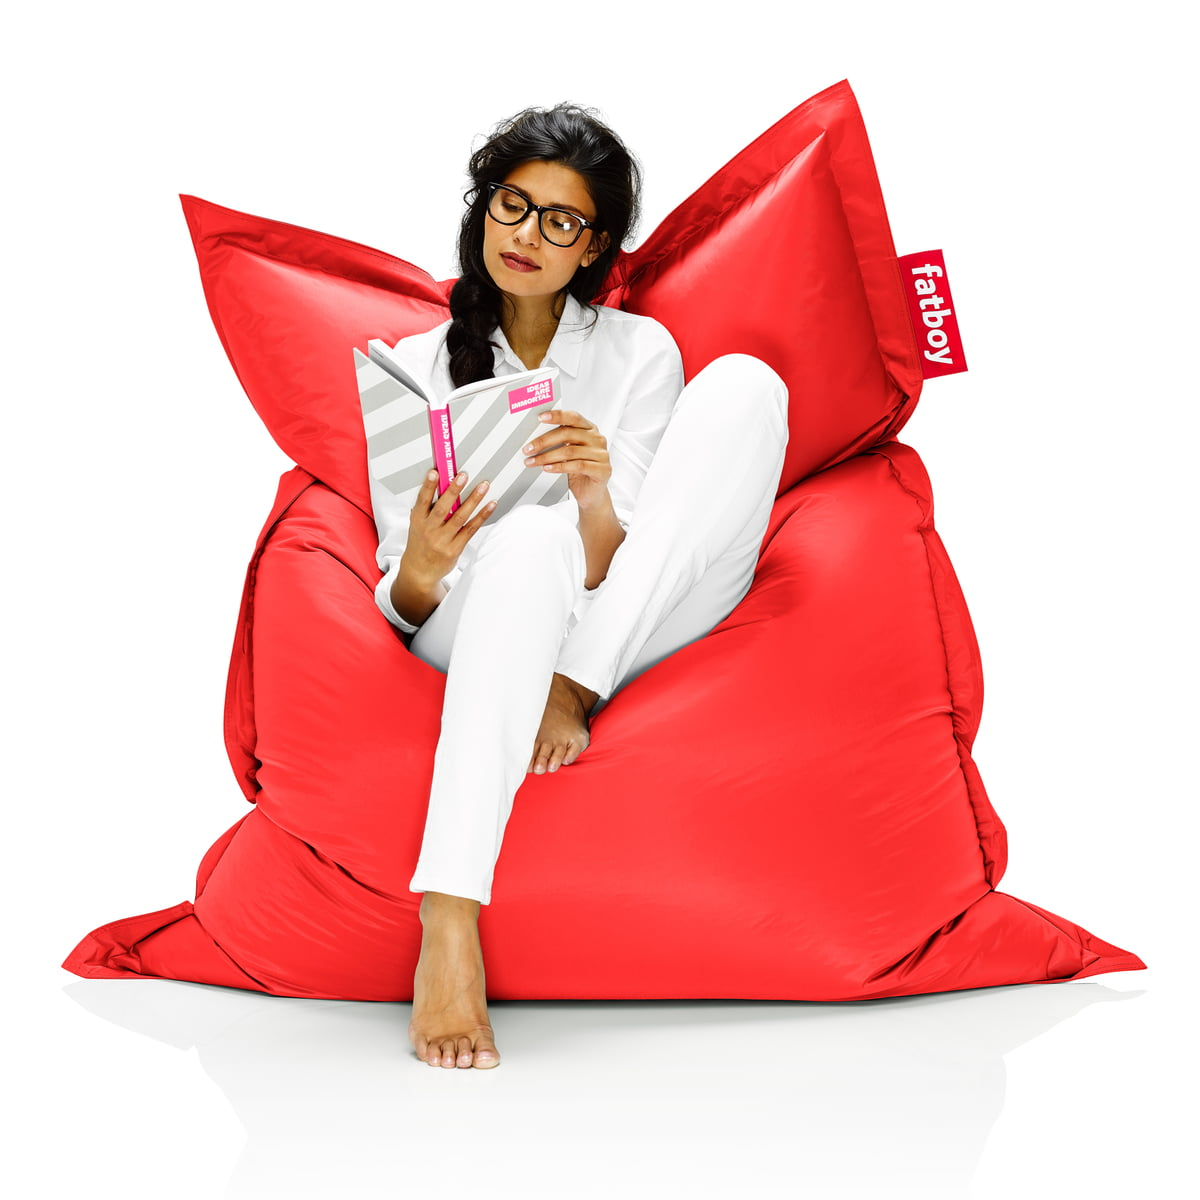 Buy The Fatboy Original Beanbag Online